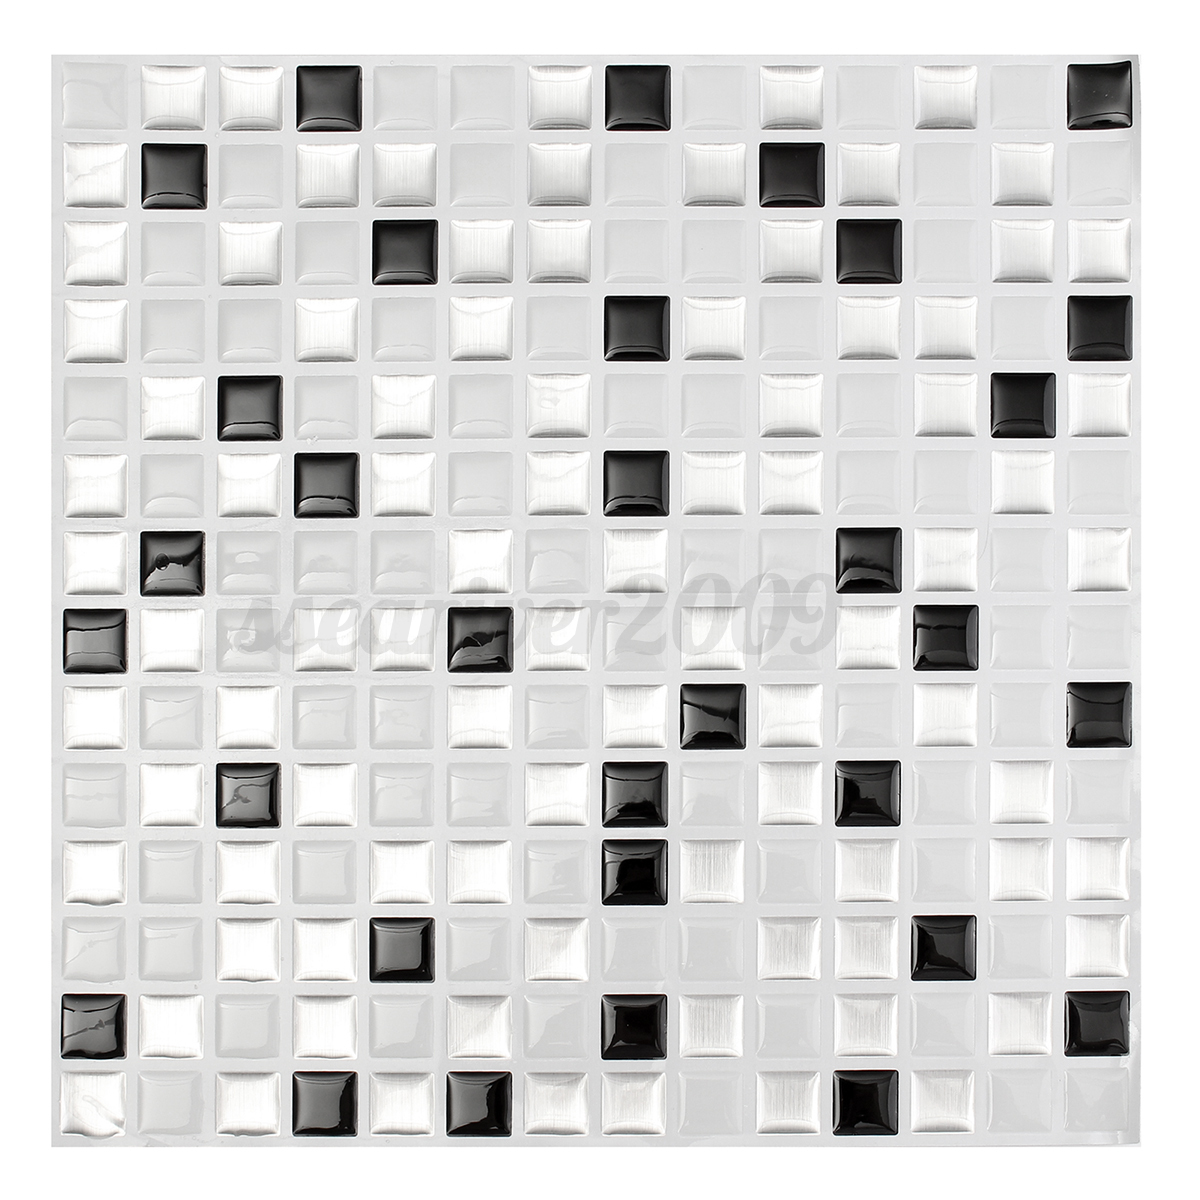 Wallpaper Tiles For Kitchen: 3D Mosaic Tile Modern Wallpaper Foil Sticker Bathroom